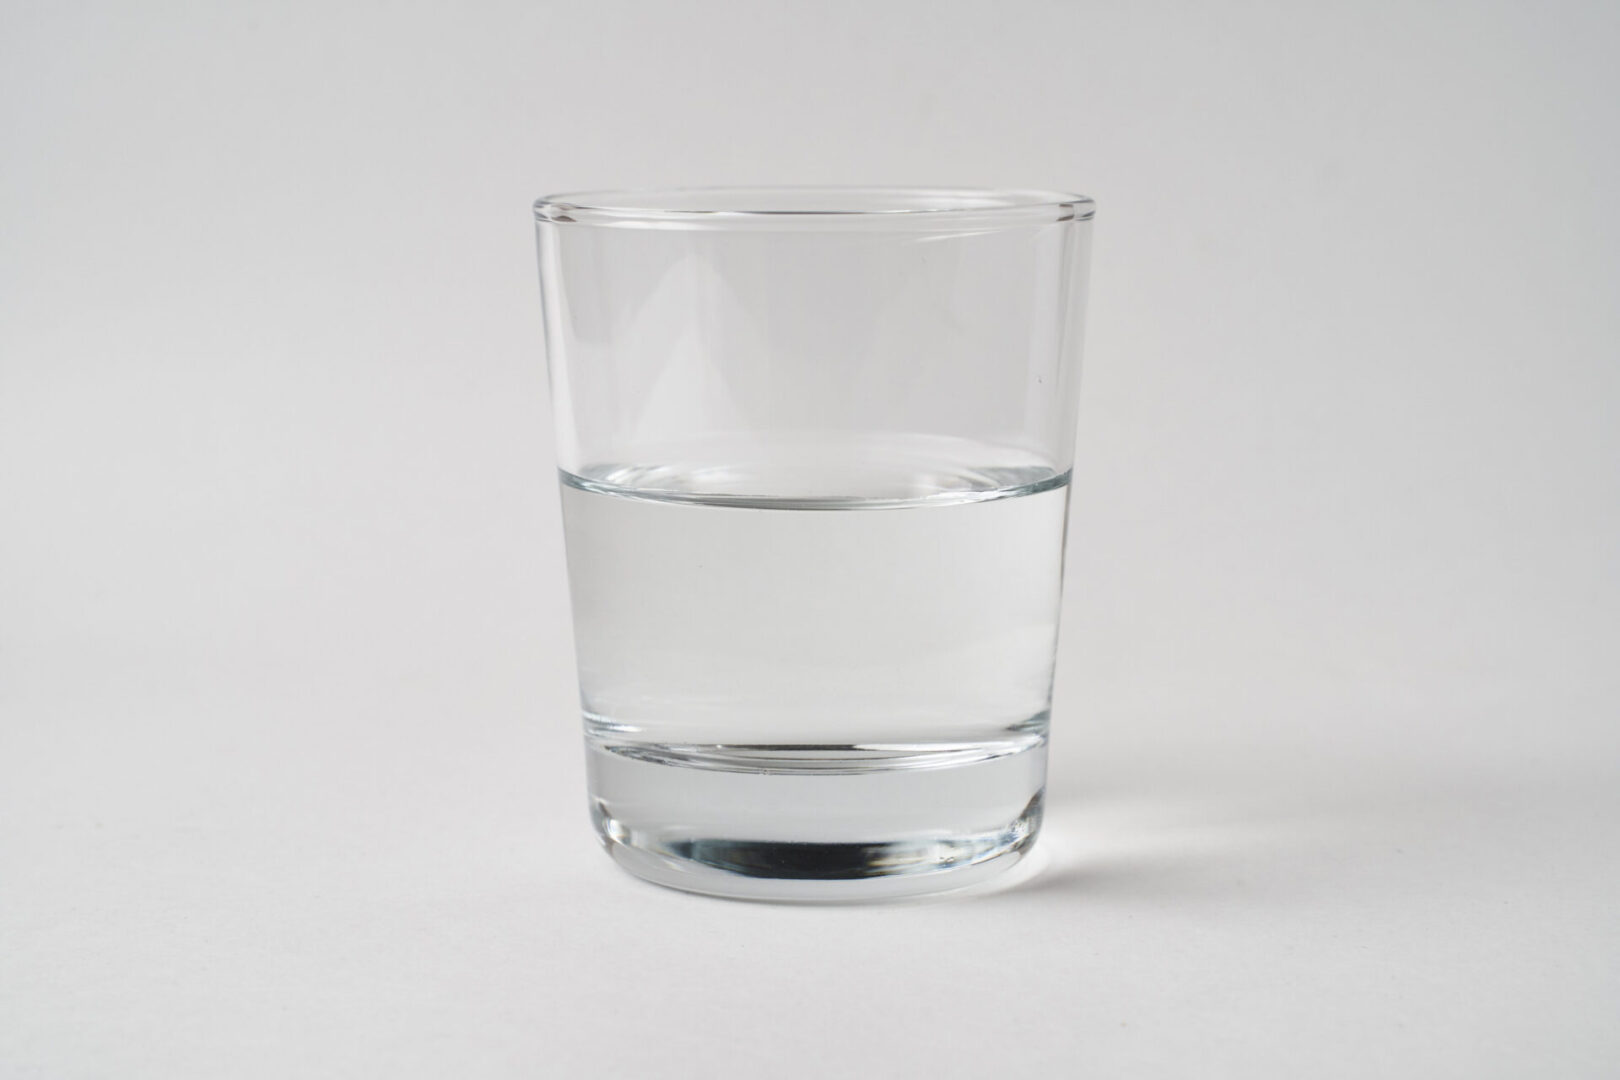 water glass half full